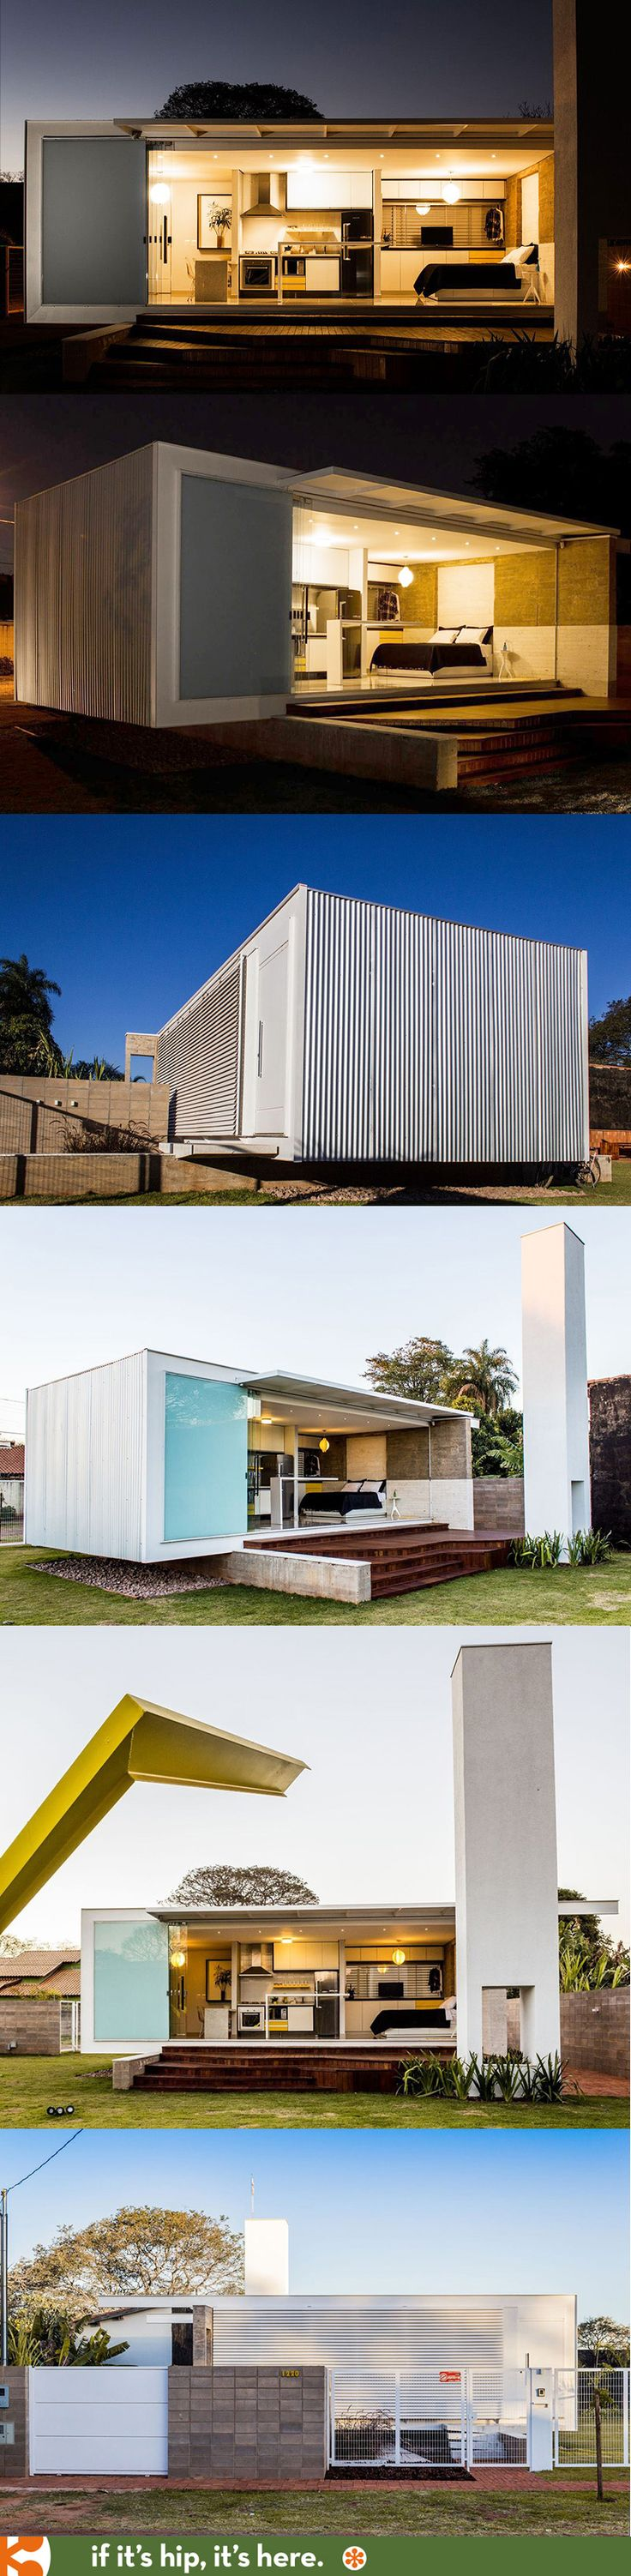 A Tiny But Terrific Modern Prefab in Brazil.